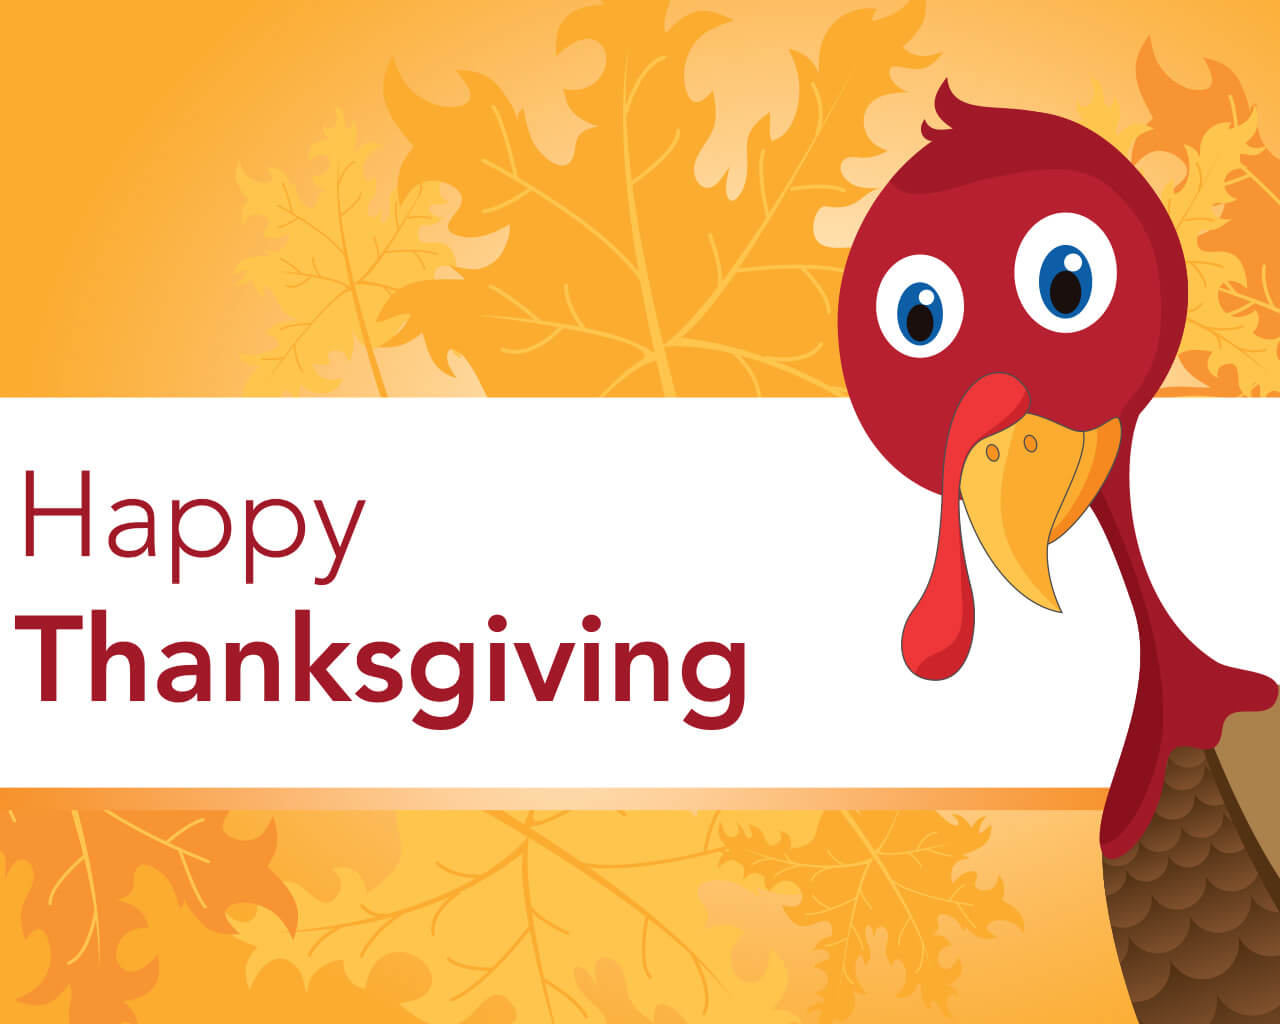 Happy Thanksgiving Wallpapers Hd 2019 For Desktop Pc